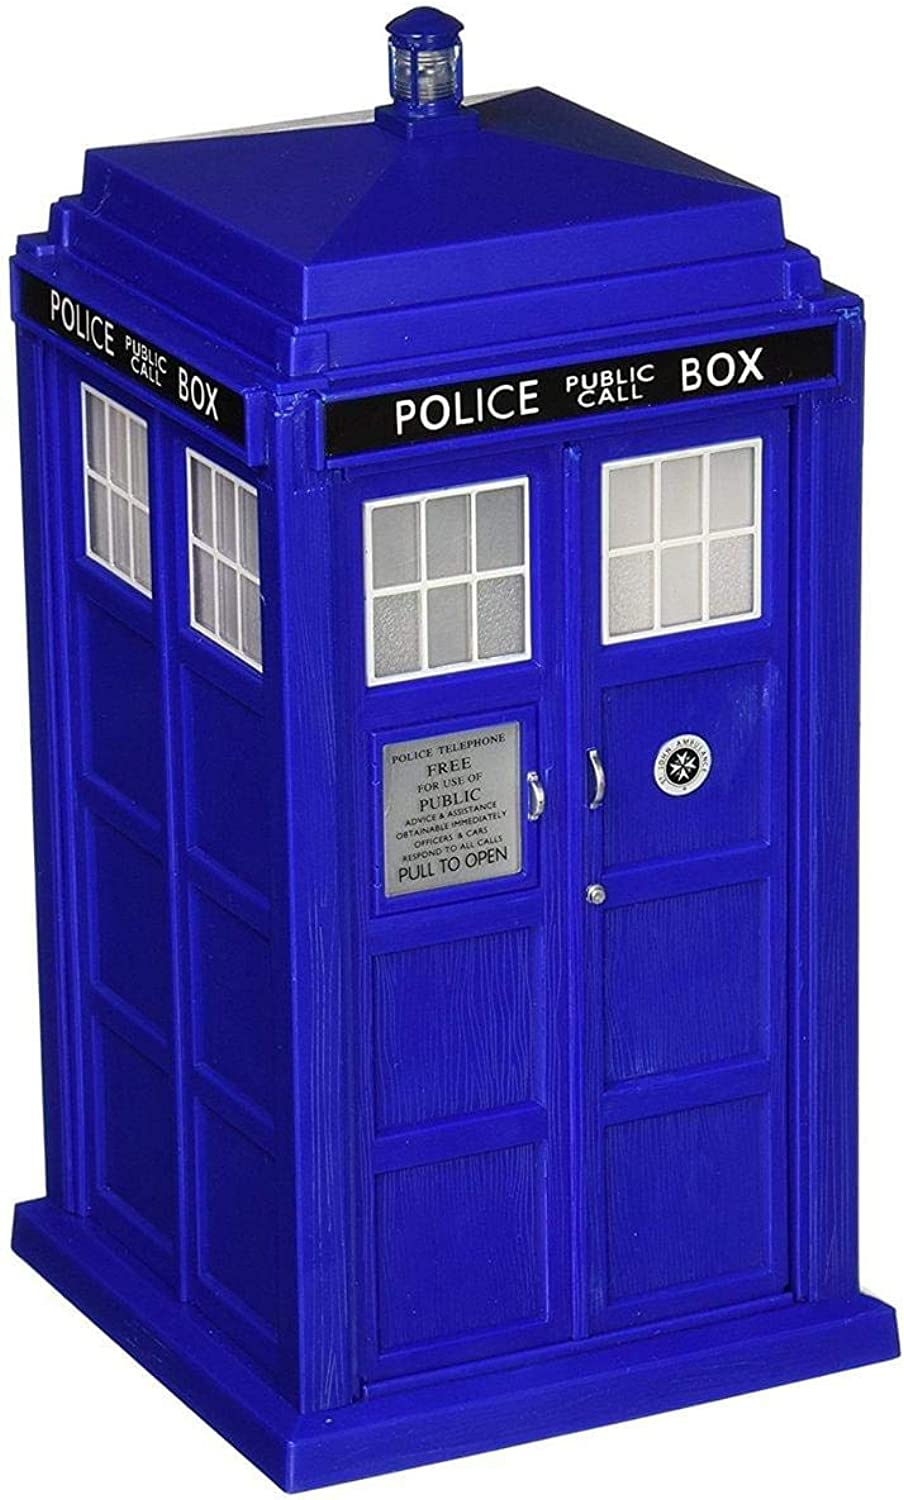 Doctor who 12th doctor flight control 9 inch tardis model